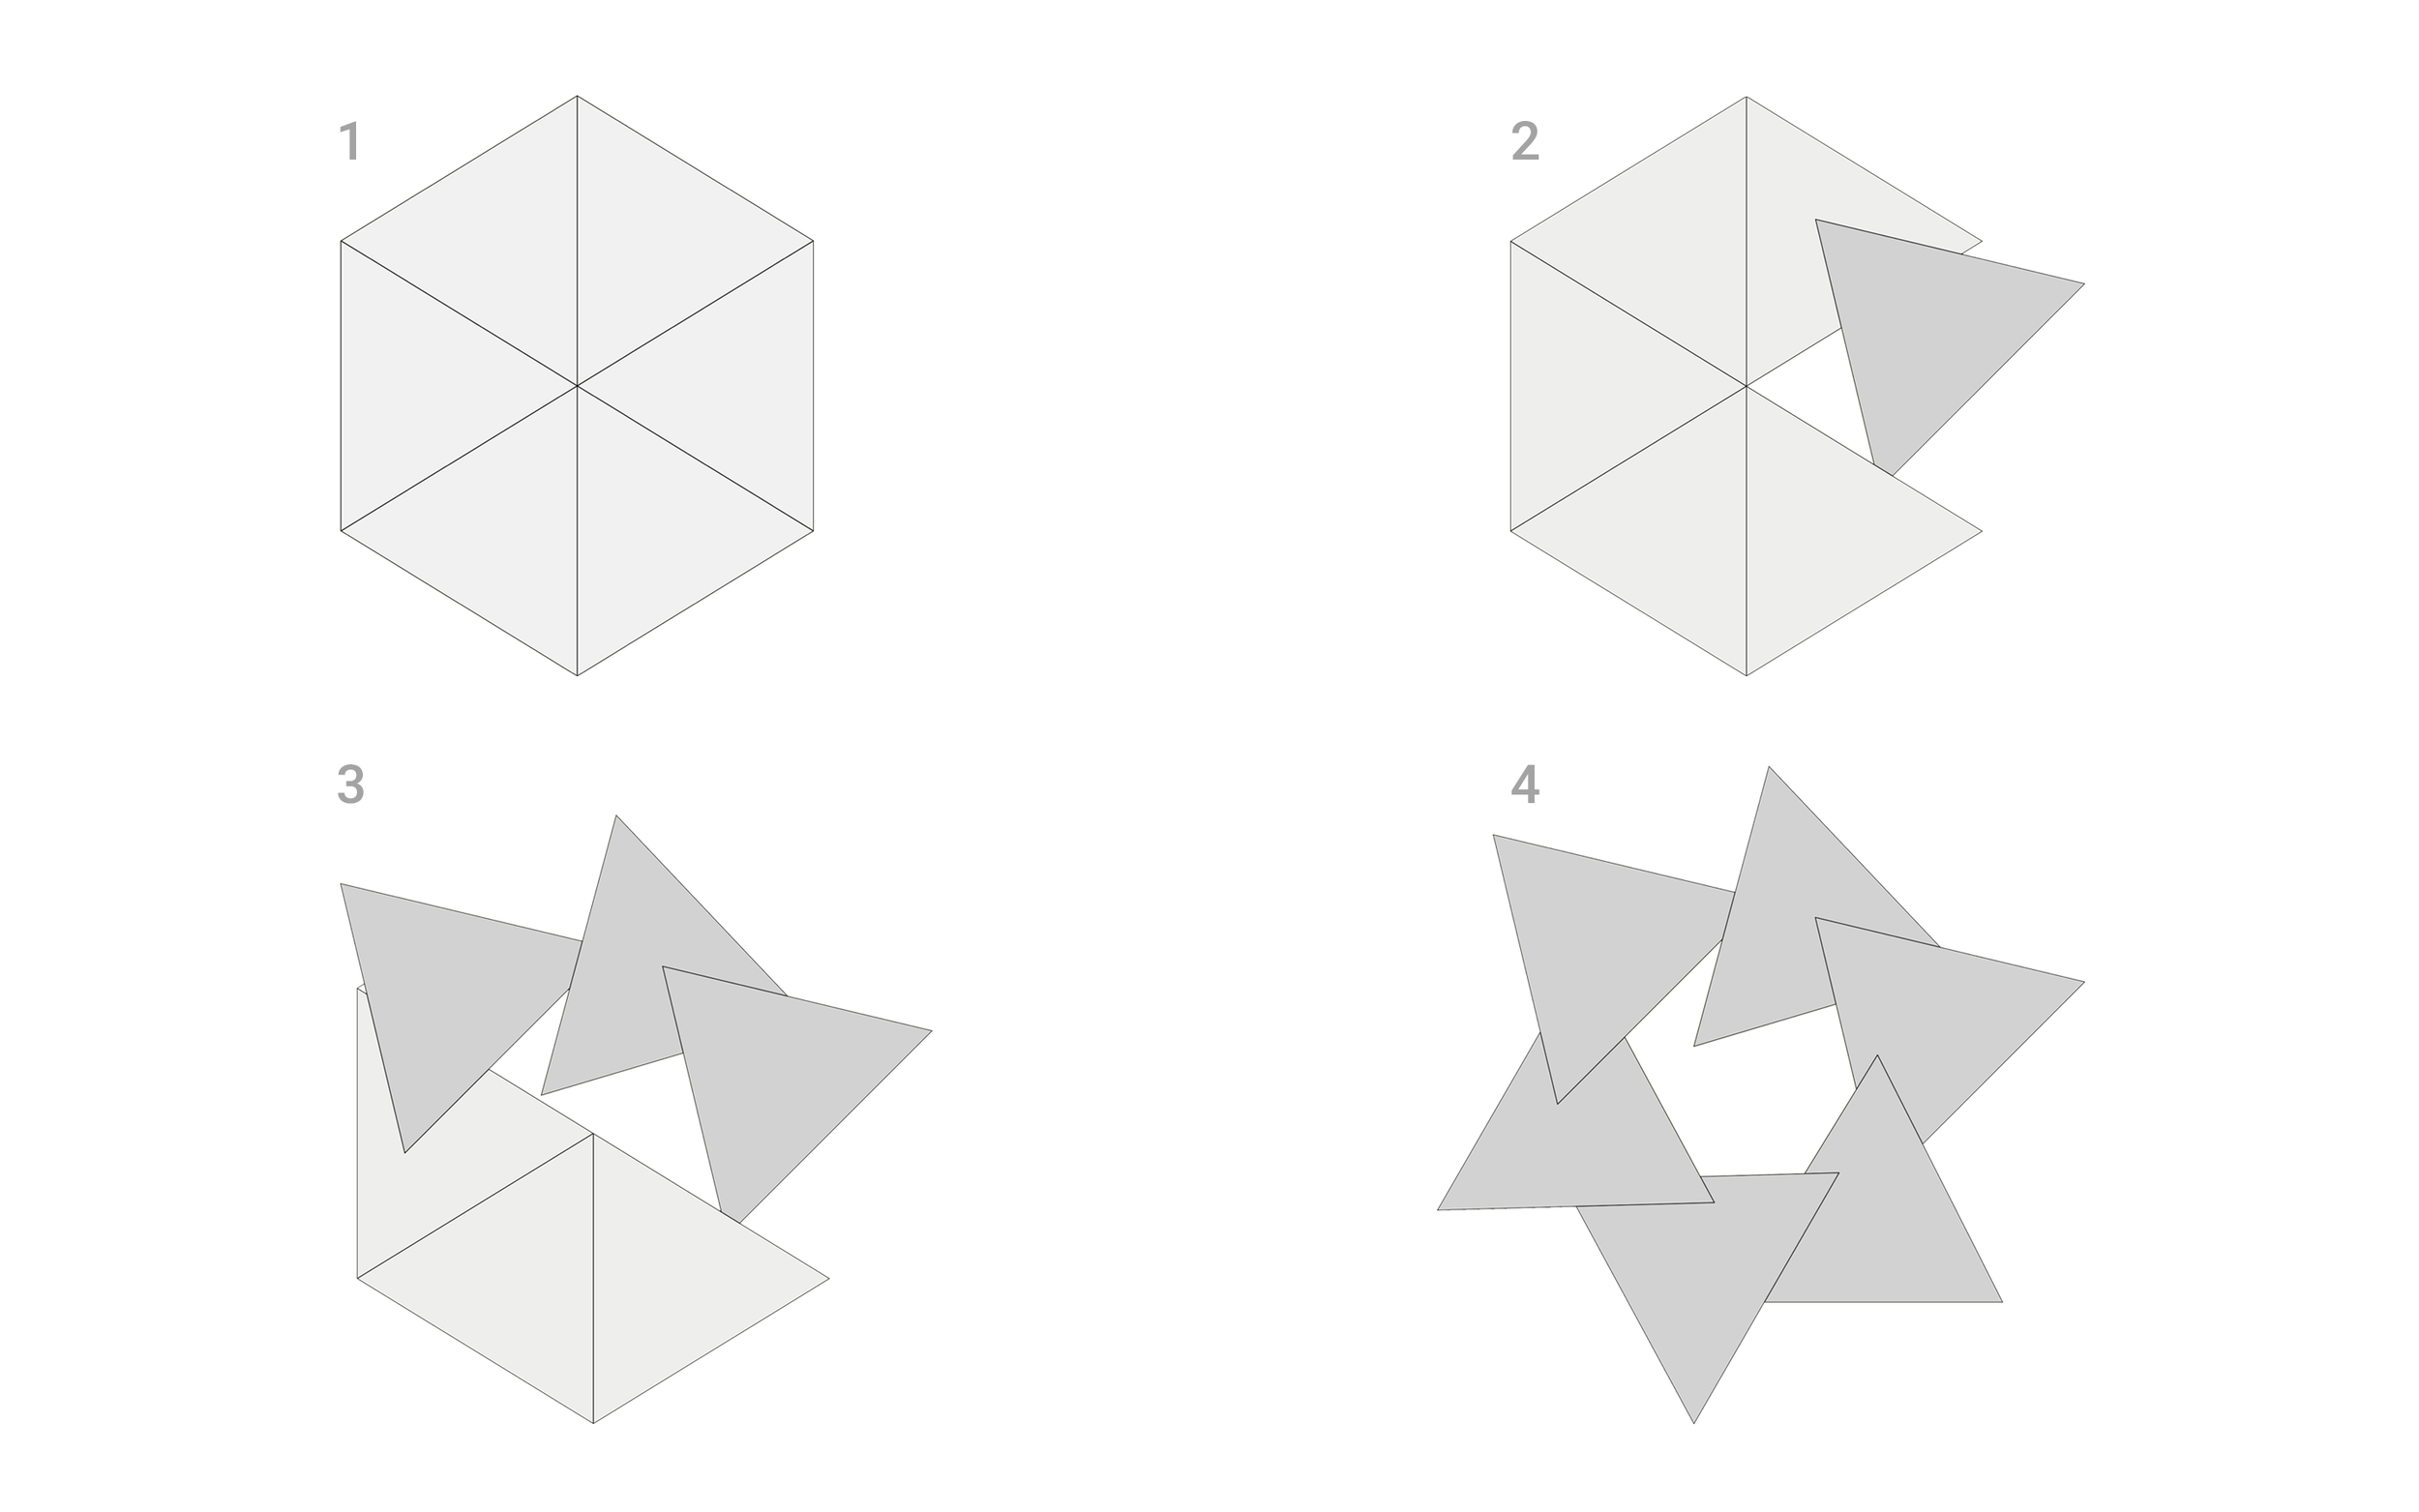 Diagram of each movement phase.